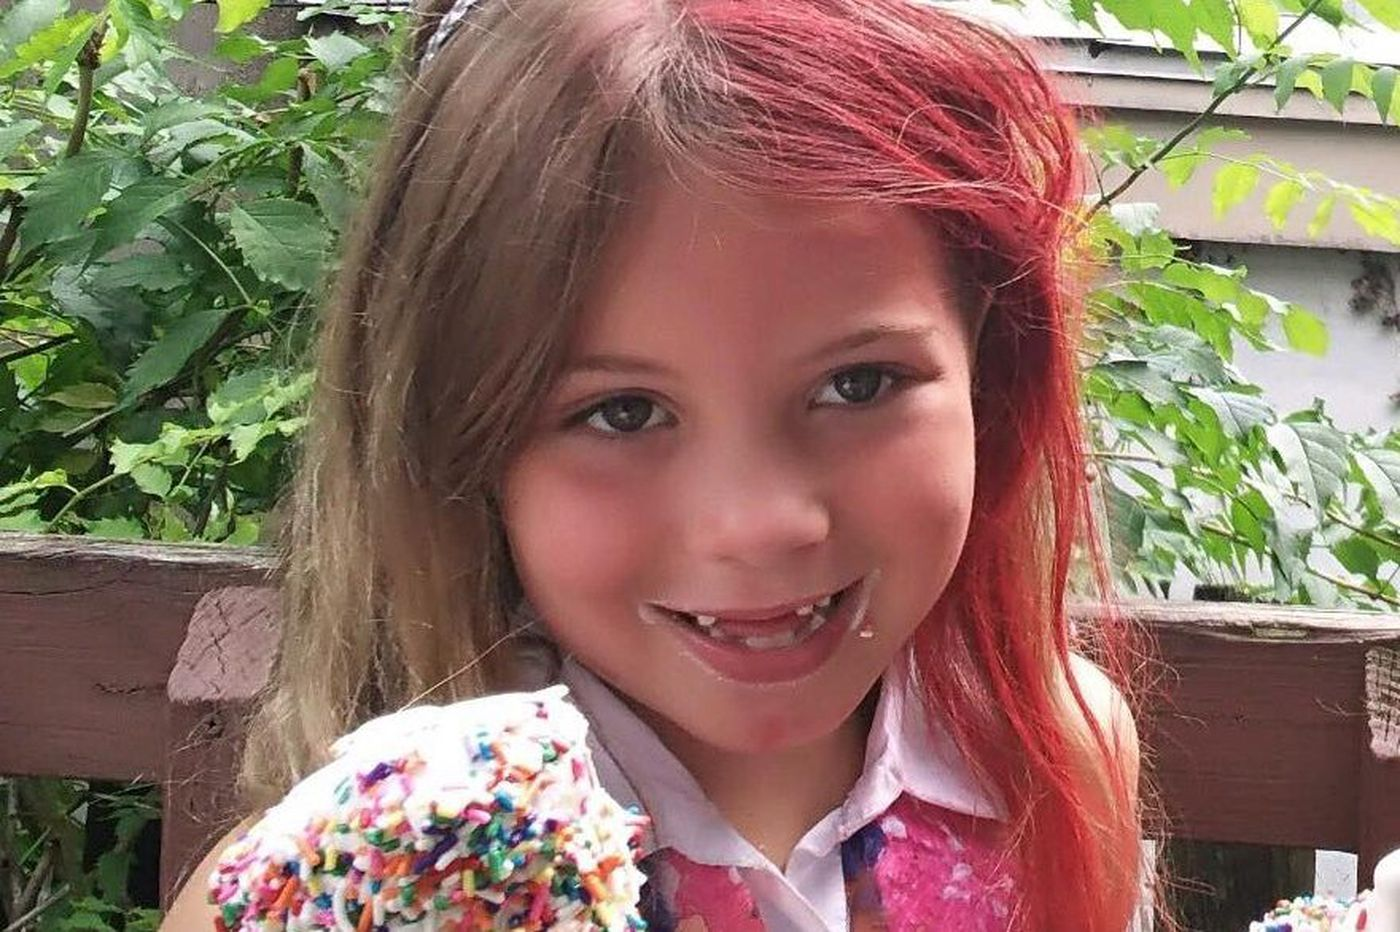 7 Year Old Girl Killed In Apparent Murder Suicide In